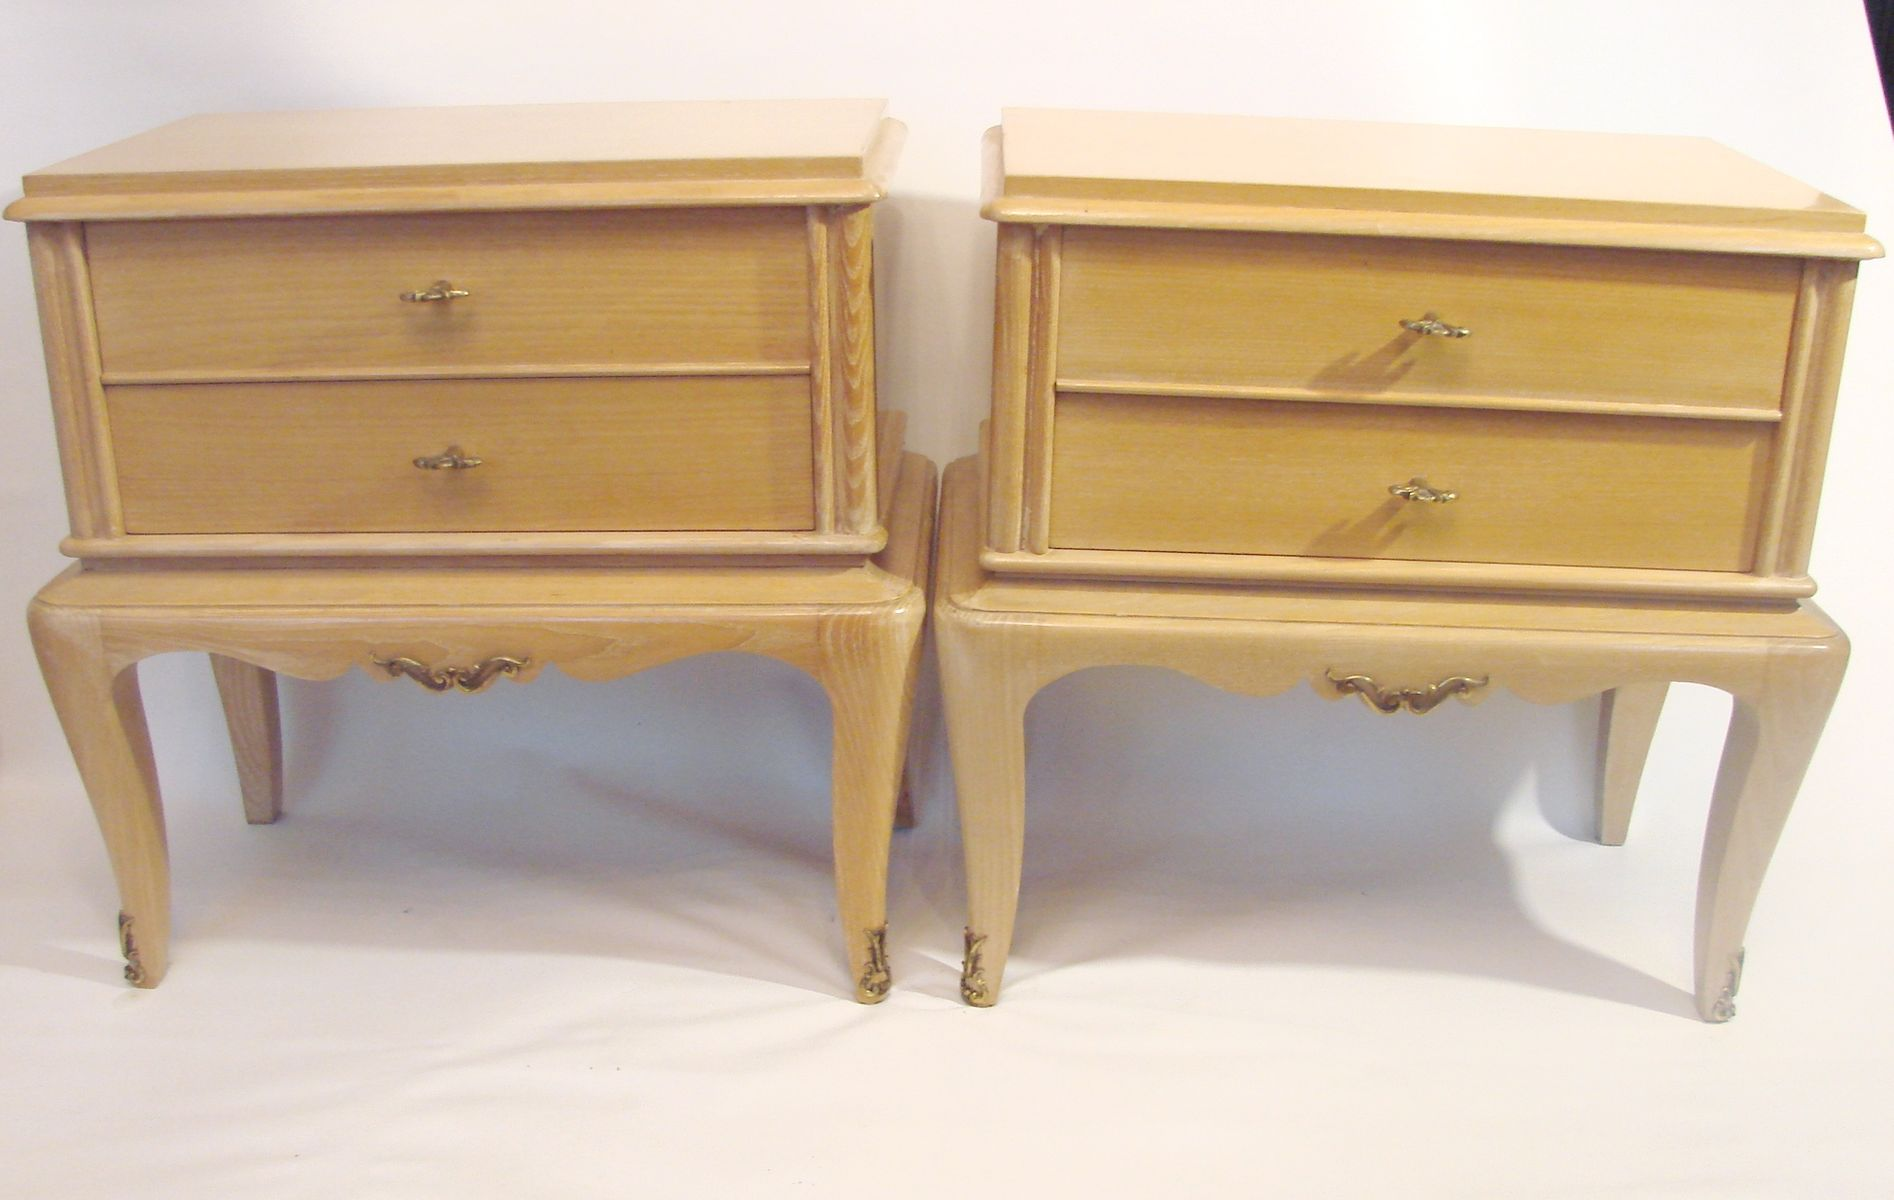 Solid Wood Bedside Cabinets 1960s Set Of 2 For Sale At Pamono